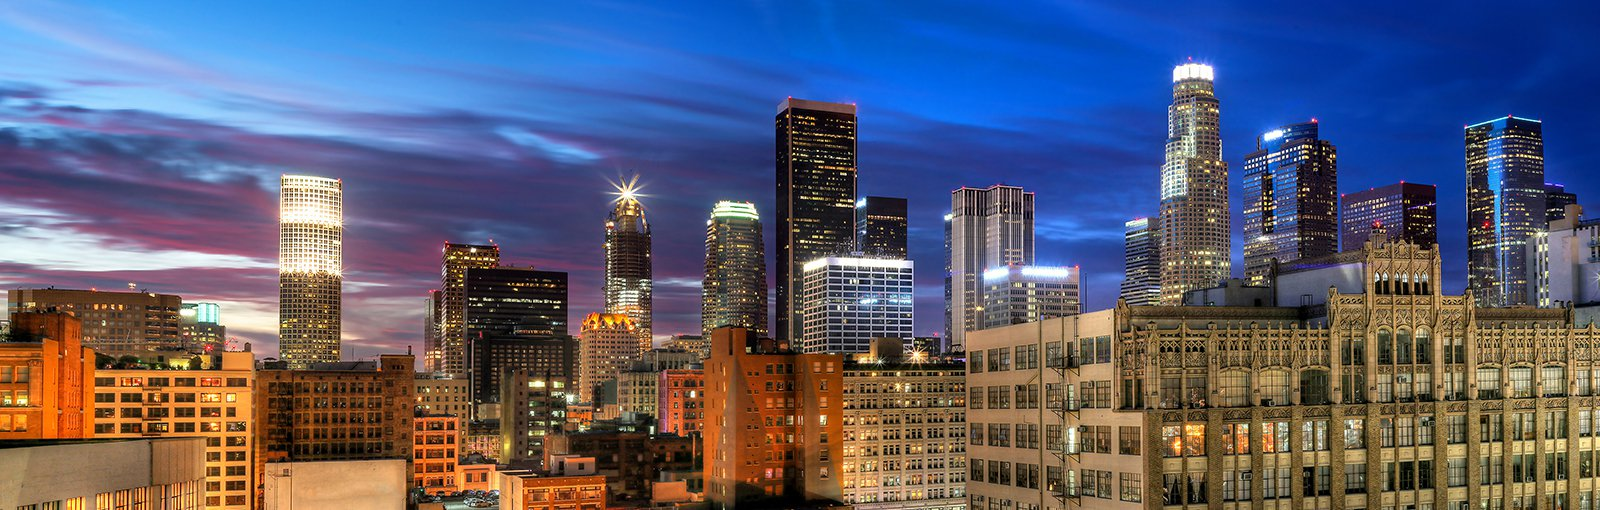 Los Angeles Data Centers & Colocation